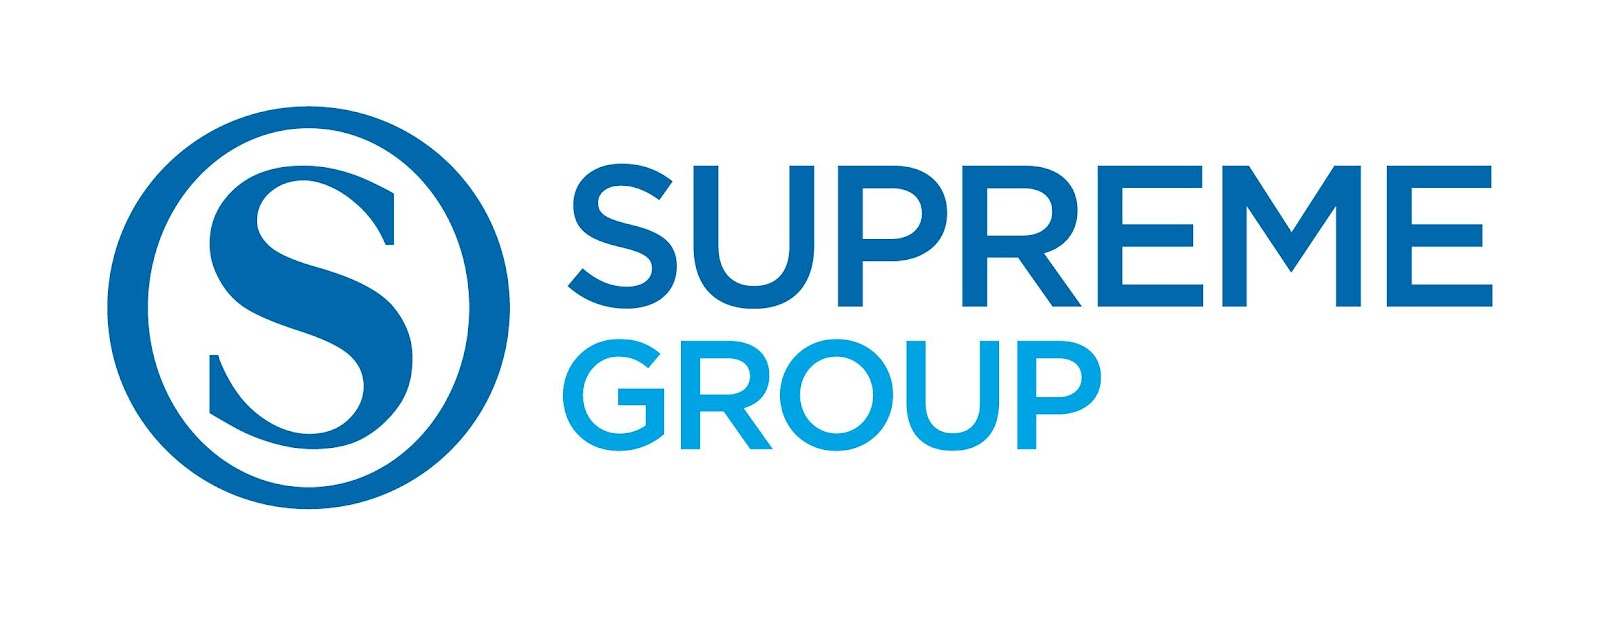 C:\Users\ayan_d\AppData\Local\Microsoft\Windows\Temporary Internet Files\Content.Word\supreme group logo.jpg